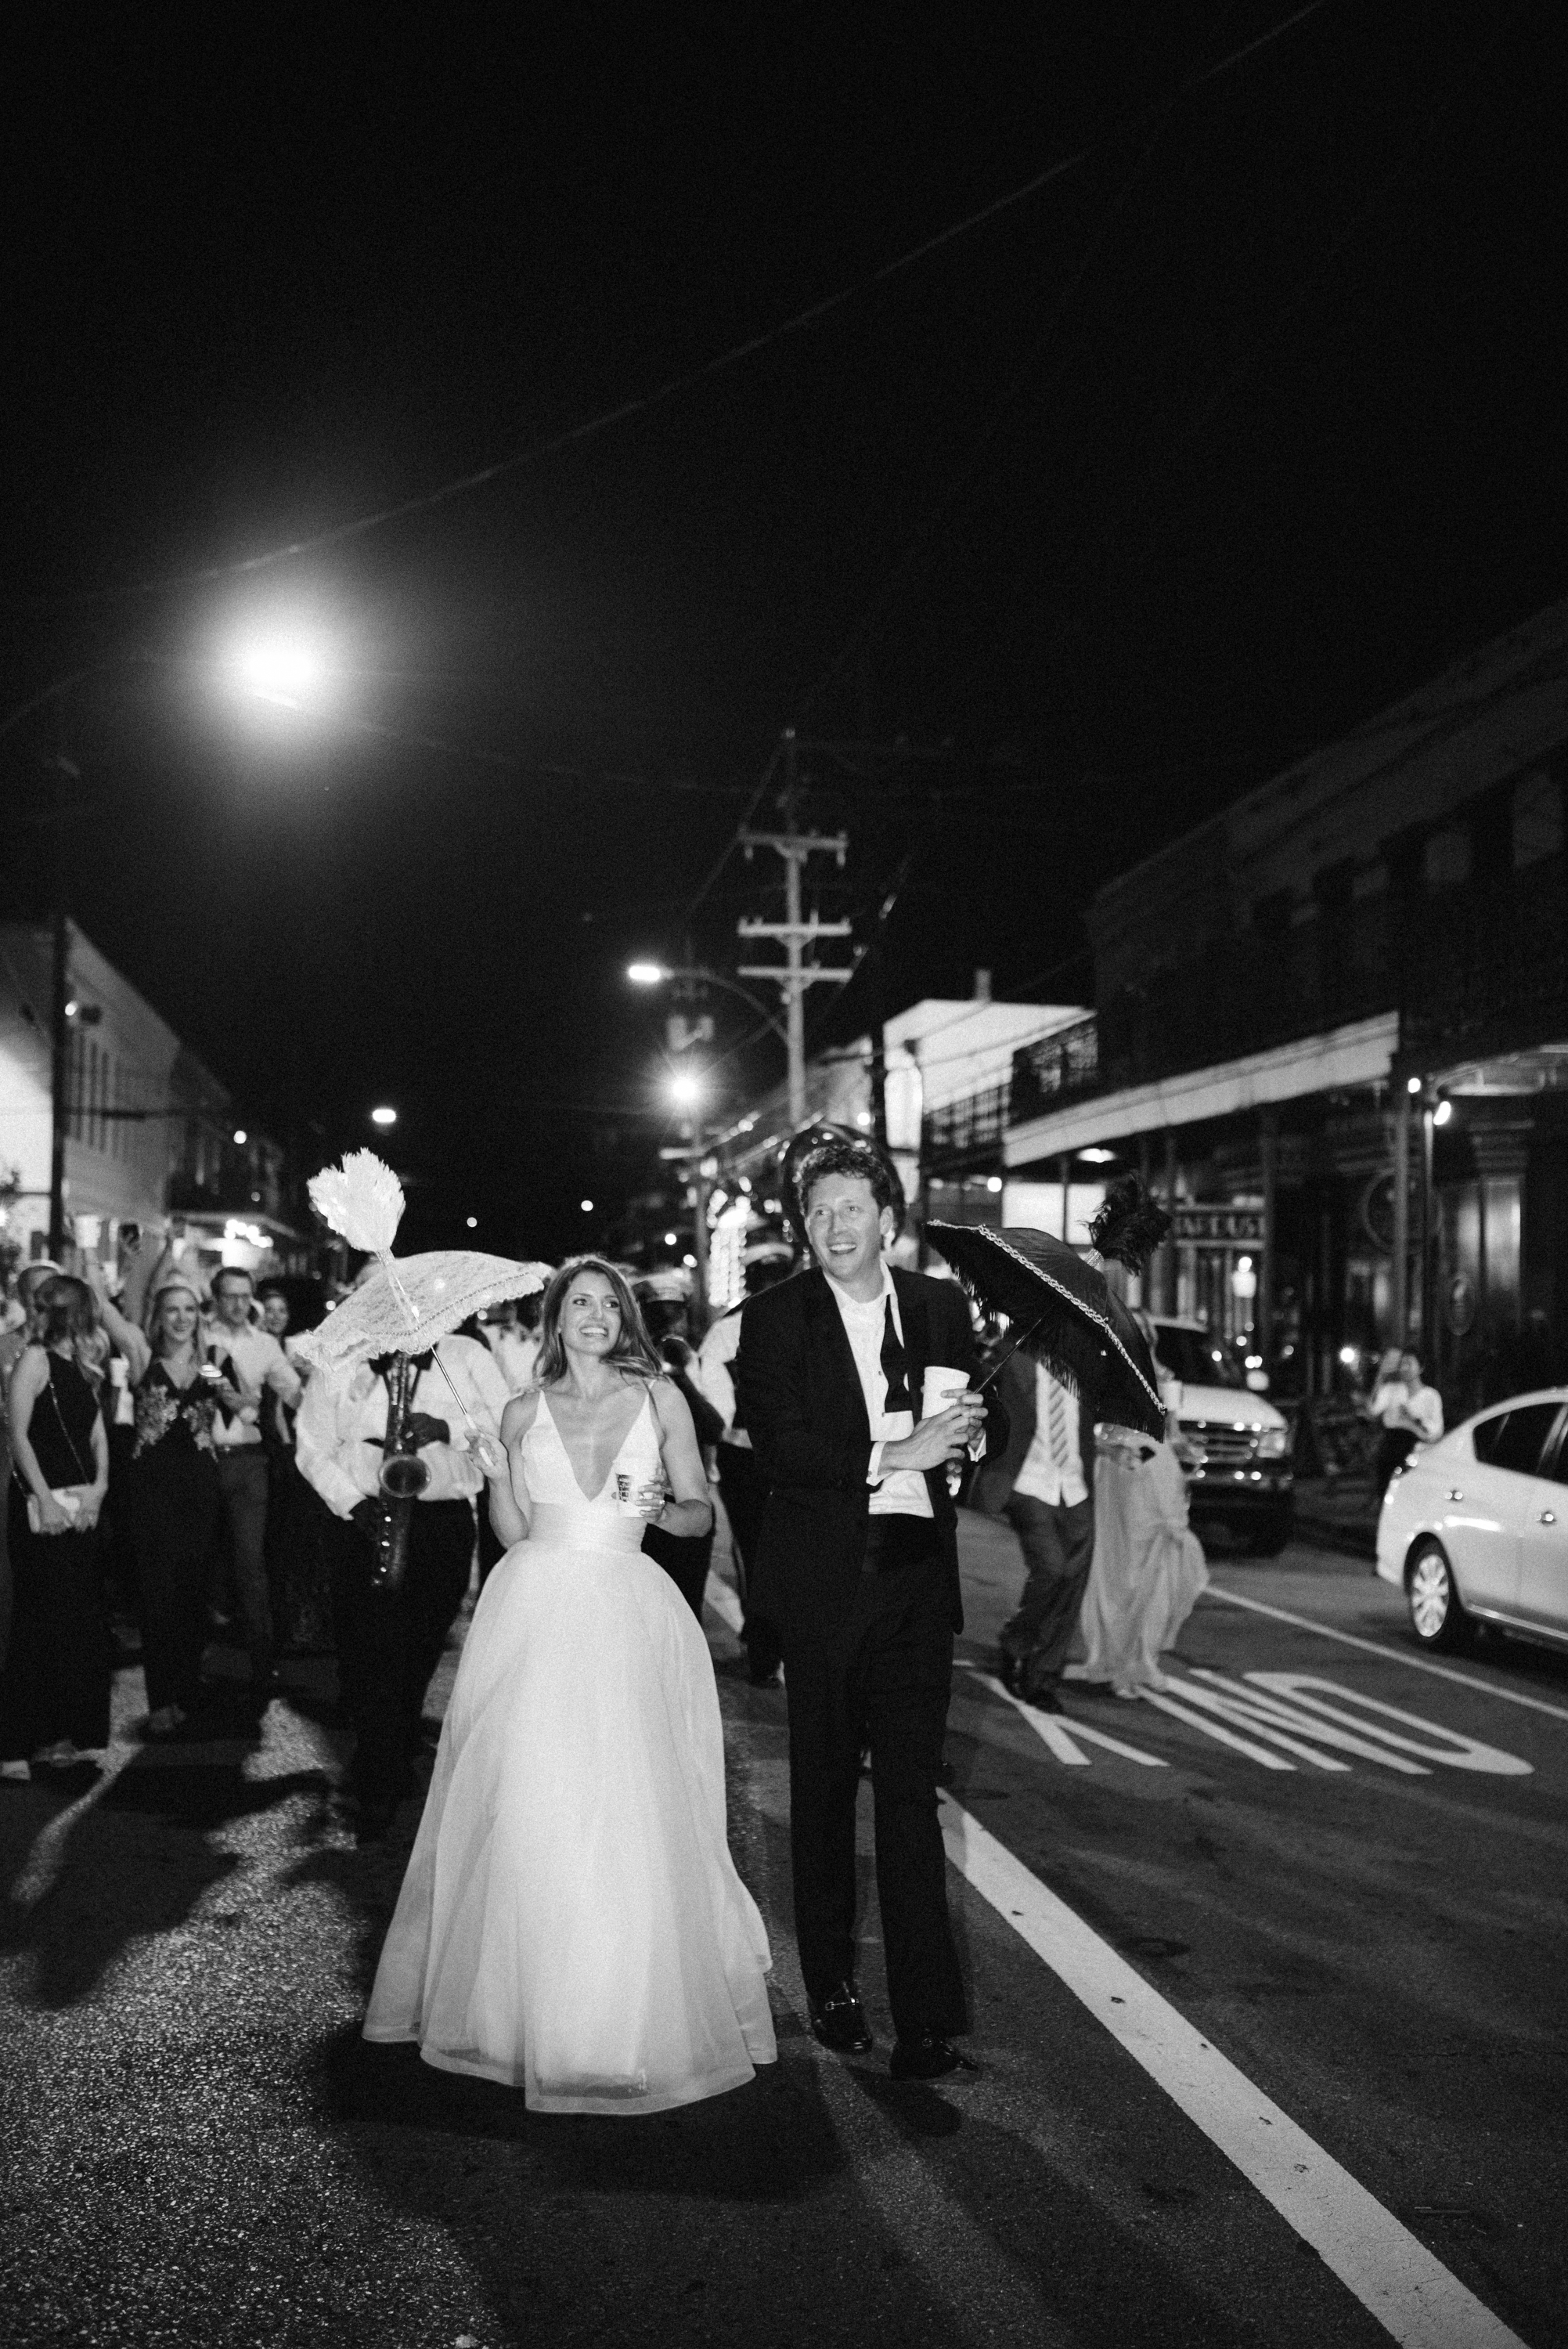 neworleans-wedding-at-il-mercado-by-134themastersinlove.JPG